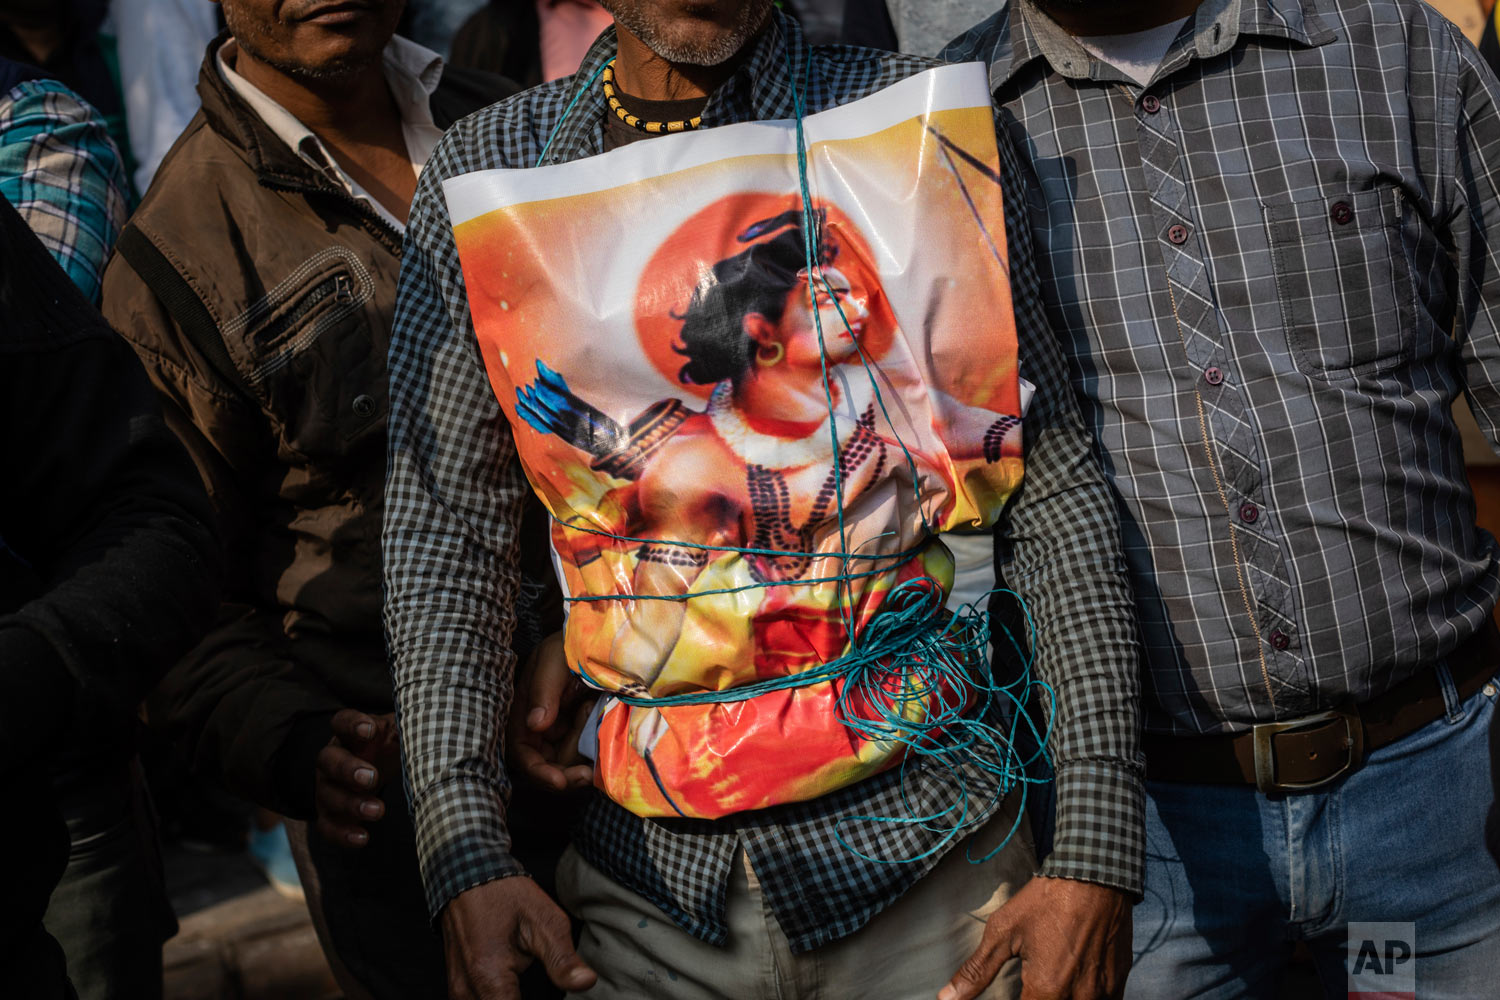 A supporter of Hindu-extreme political group Vishwa Hindu Parishad wears a poster of the Hindu god Ram during a rally in New Delhi, India, Dec. 9, 2018. (AP Photo/Bernat Armangue)